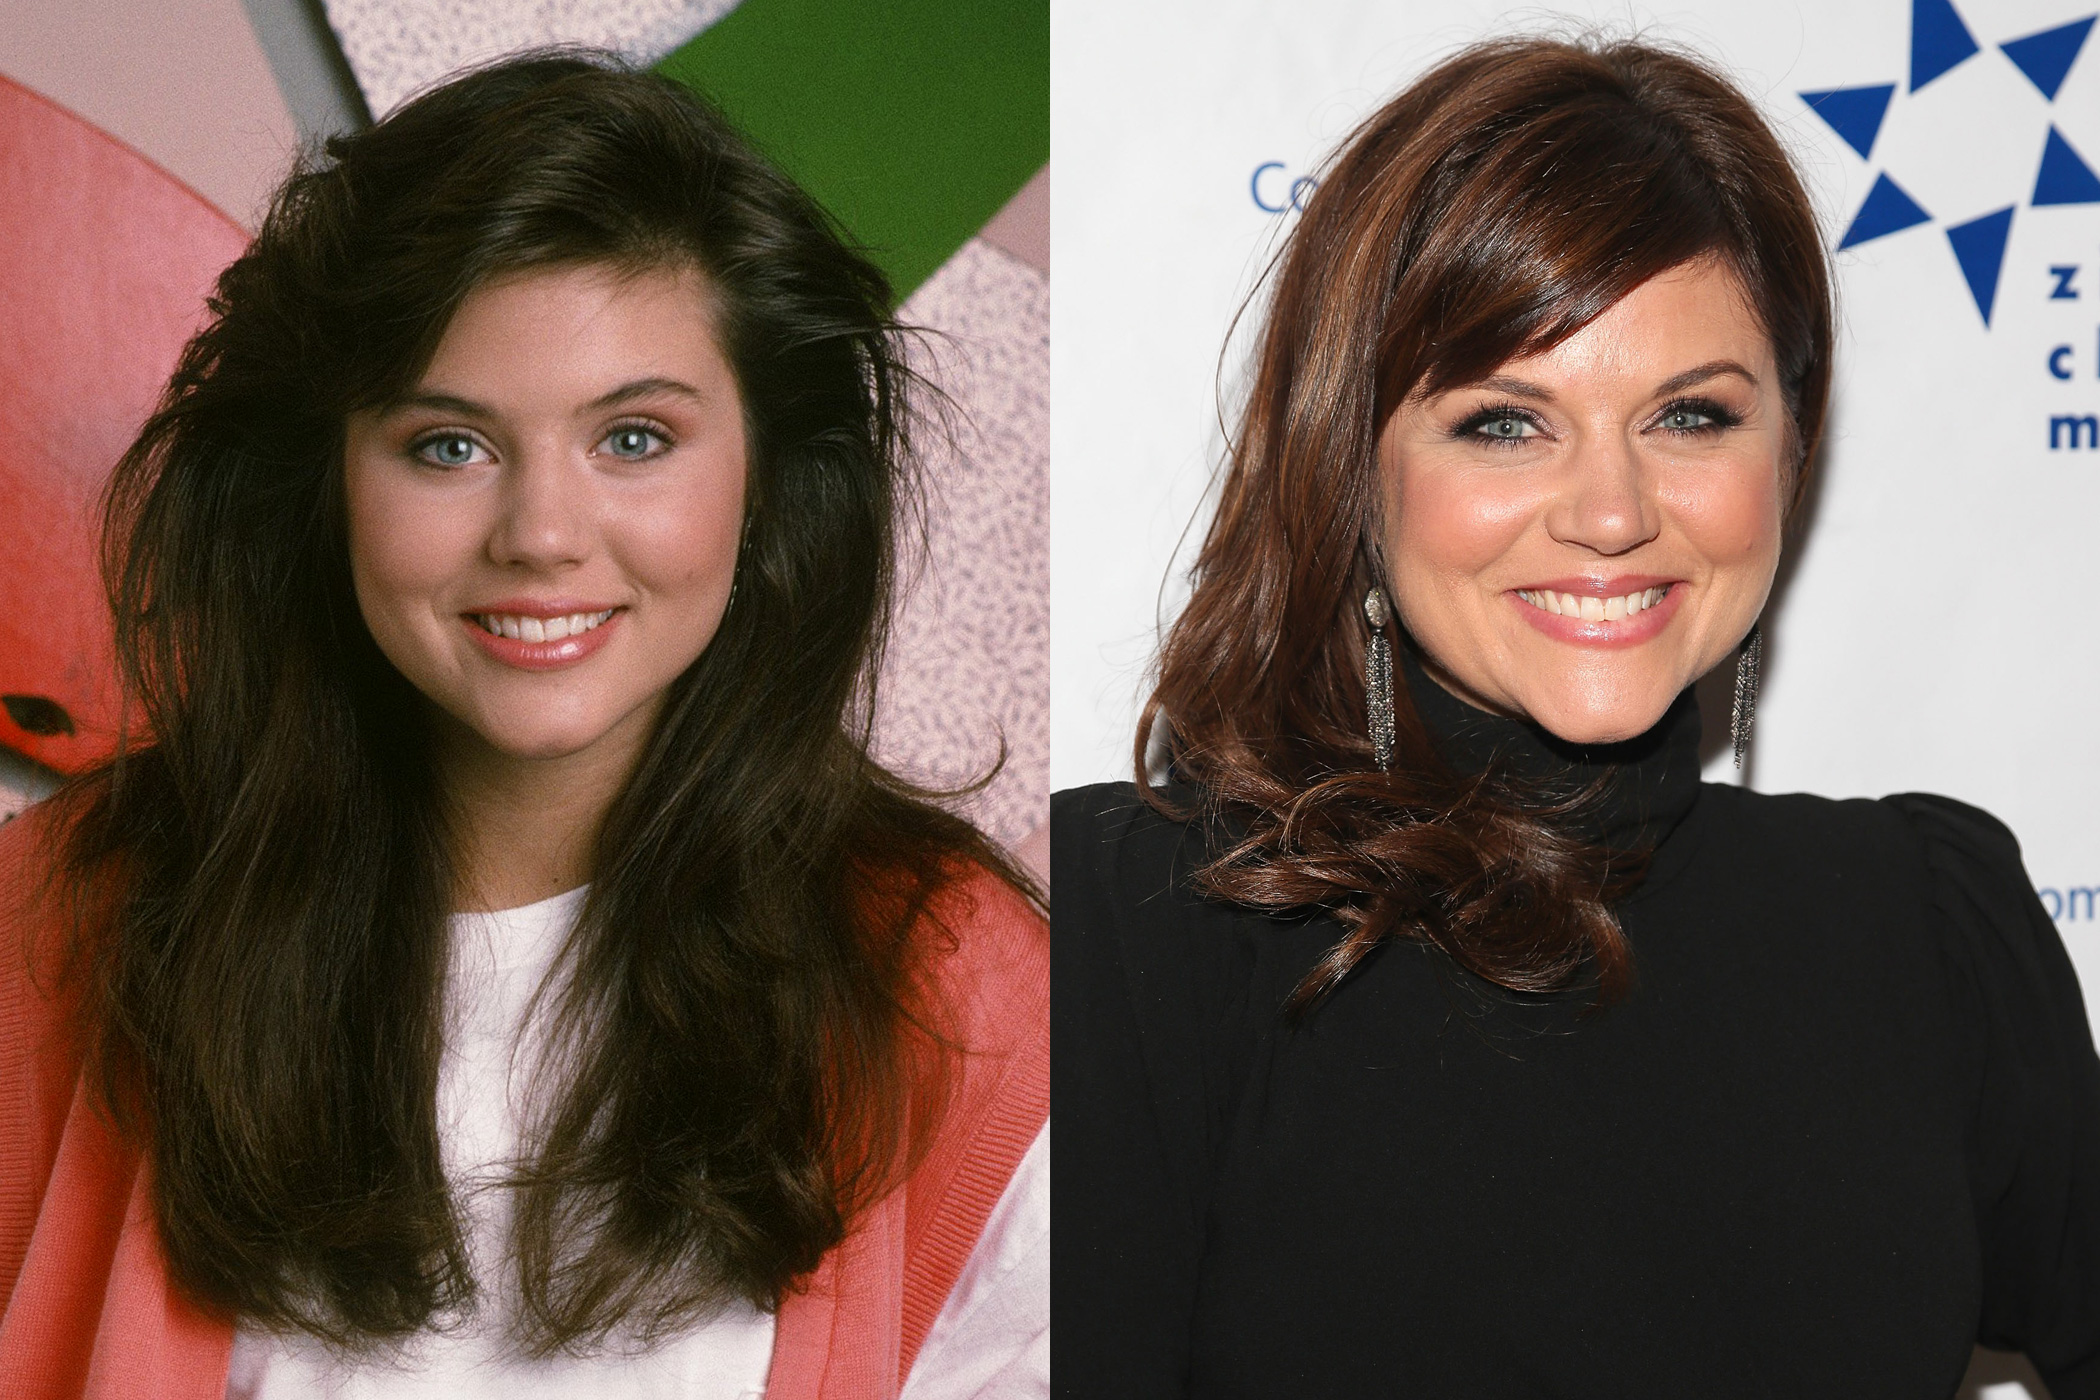 Tiffani Amber Thiessen, Kelly Kapowski: She went from good girl cheerleader to  went from playing good girl cheerleader to troubled Valerie Malone on <i>90210</i>. Thiessen appeared most recently on <i>White Collar</i>.